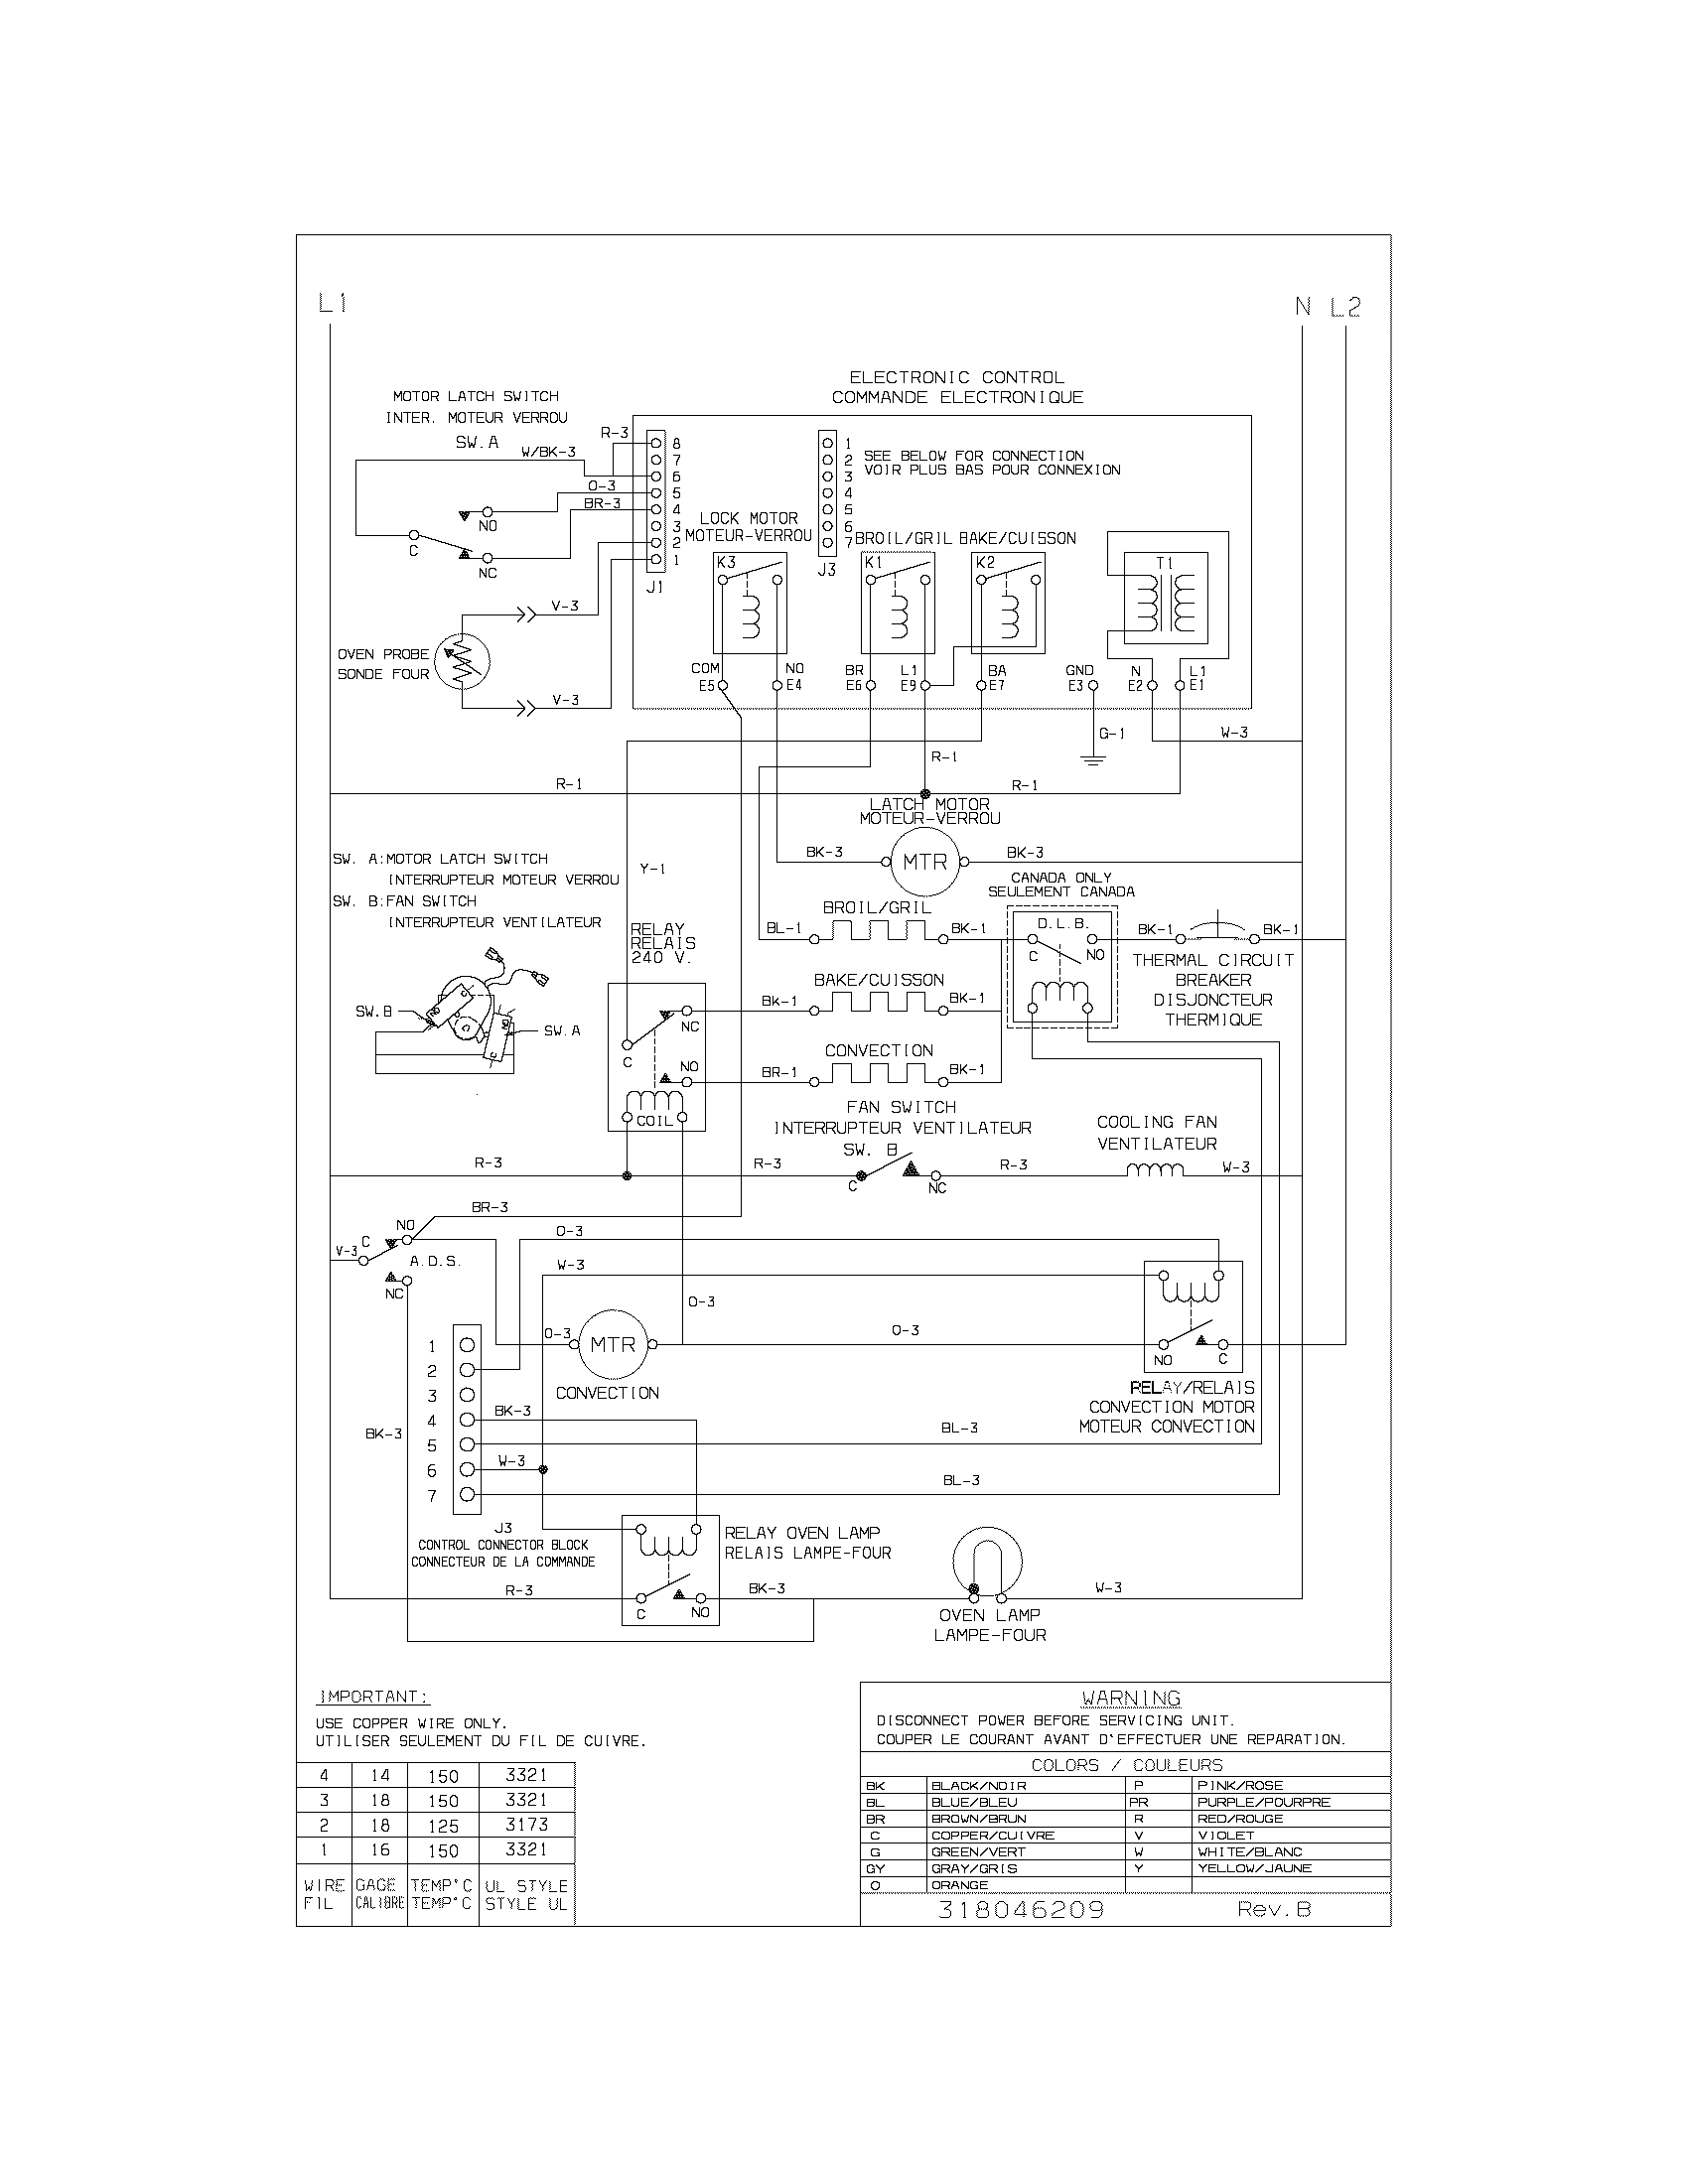 wiring diagram for frigidaire range the wiring diagram frigidaire cgeb27s7cs1 electric walloven timer stove clocks and wiring diagram